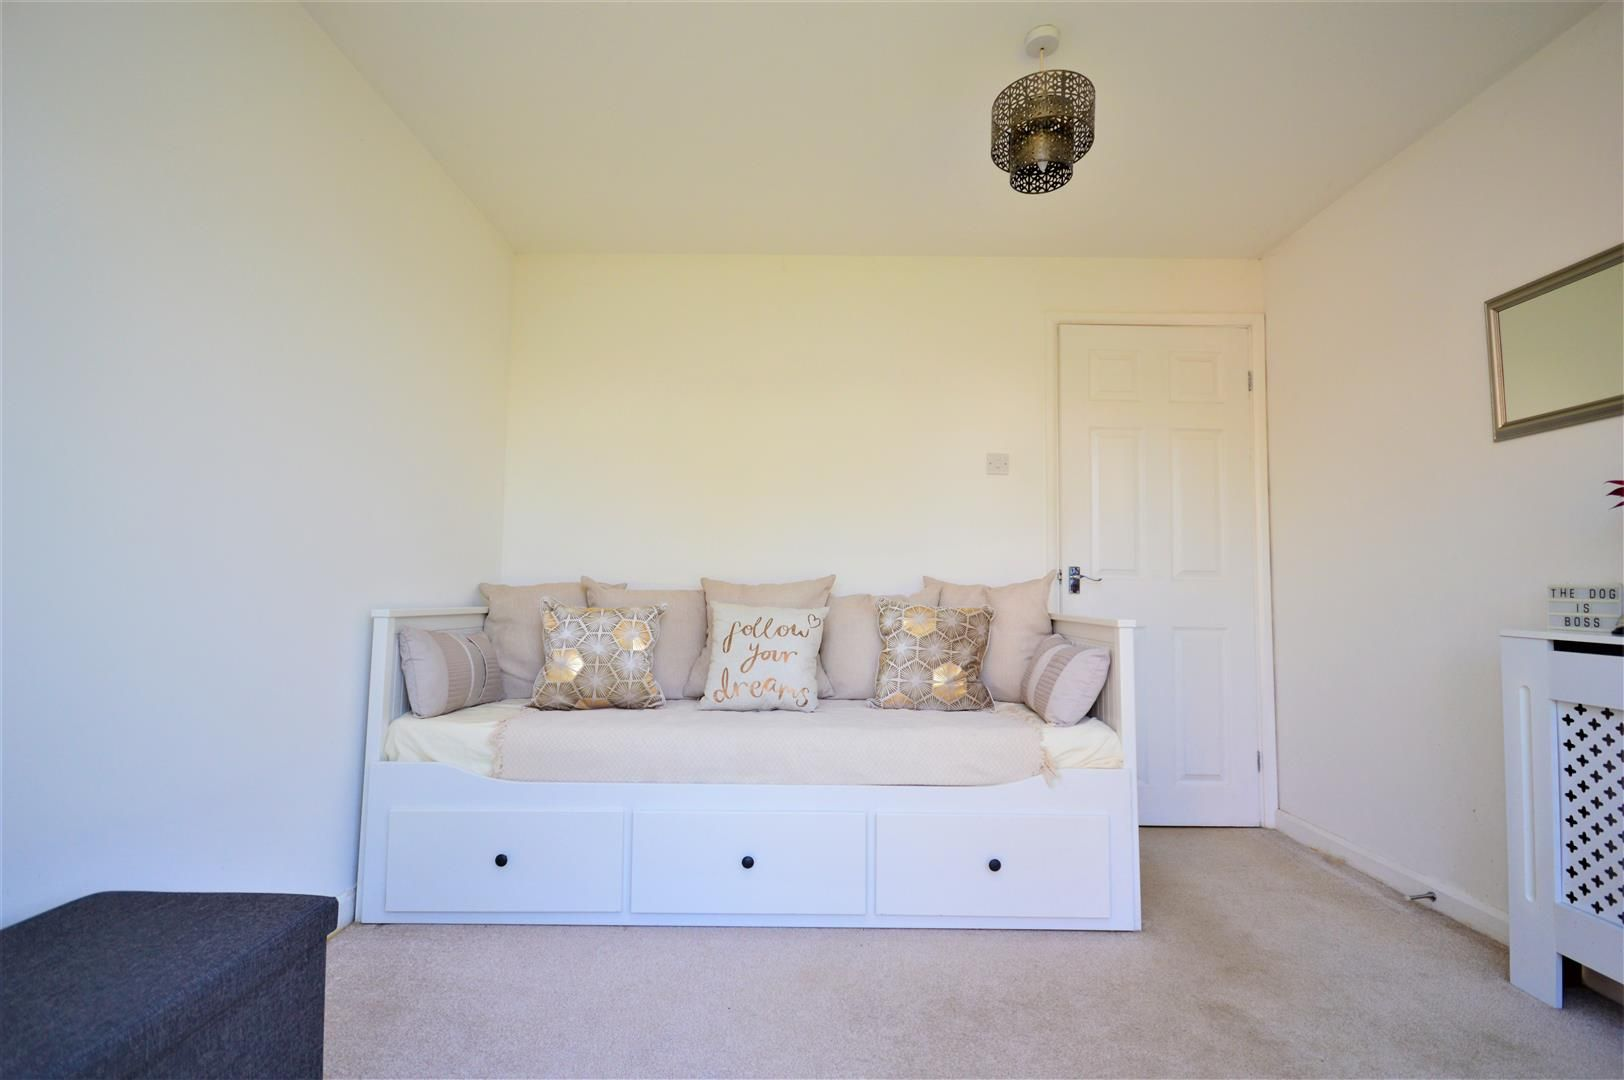 2 bed semi-detached-bungalow for sale in Marden 6